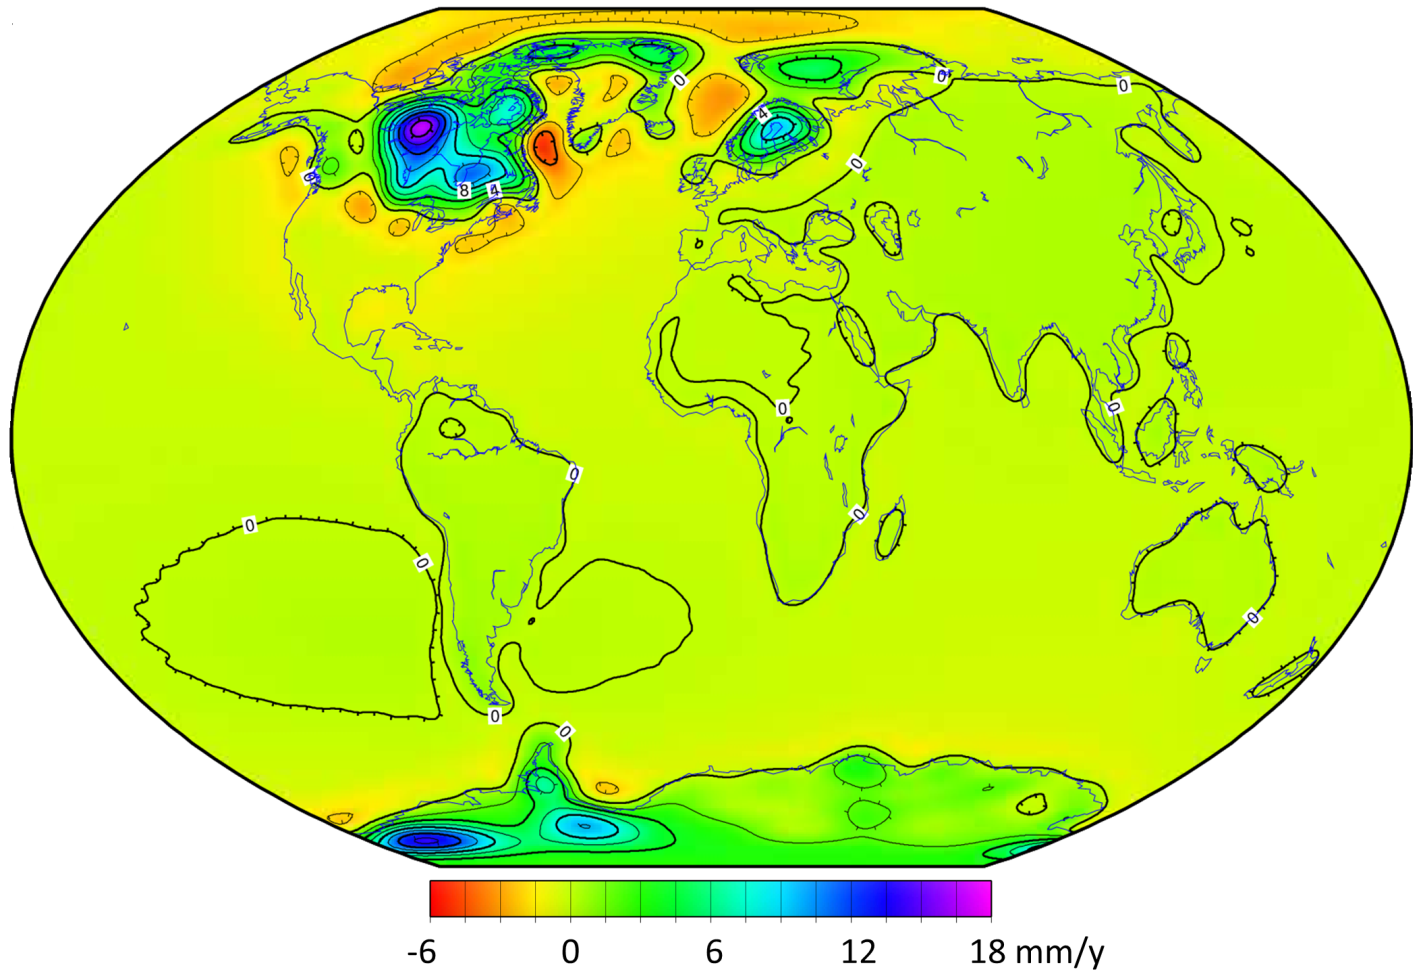 The current rates of post-glacial isostatic uplift (green, blue, and purple shades) and subsidence (yellow and orange). Subsidence is taking place where the mantle is slowly flowing back toward areas that are experiencing post-glacial uplift. [SE after Paulson, A., S. Zhong, and J. Wahr. Inference of mantle viscosity from GRACE and relative sea level data, Geophys. J. Int. (2007) 171, 497–508. NASA, Public Domain, http://bit.ly/1Z81owj]